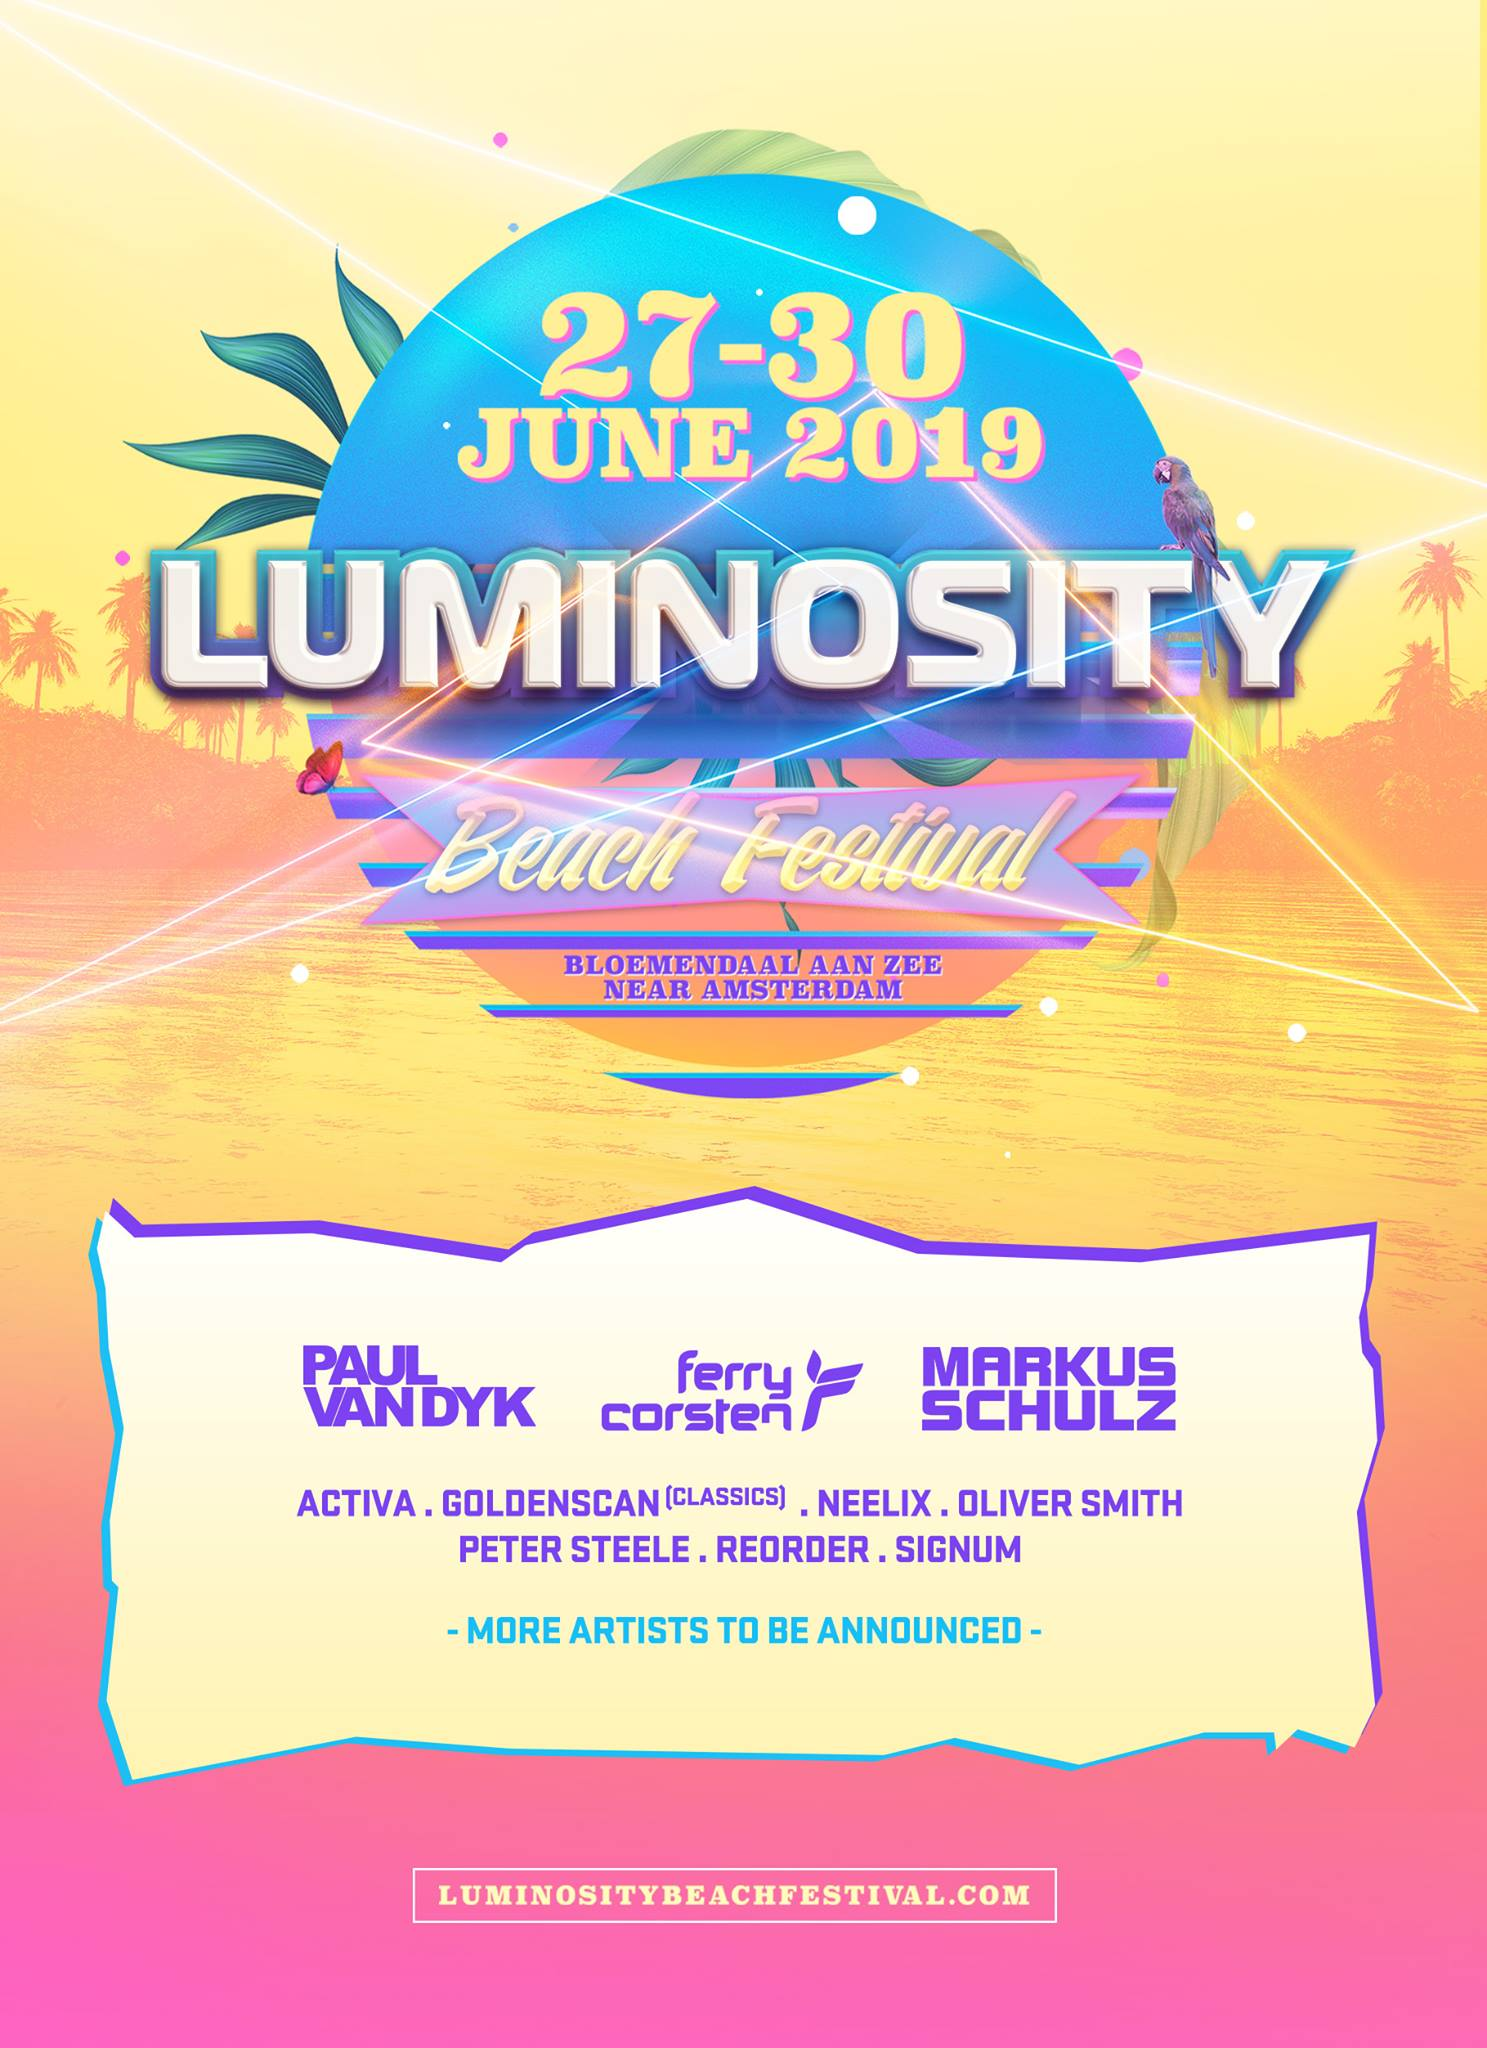 Luminosity Beach Festival 2019 Phase 1 Lineup